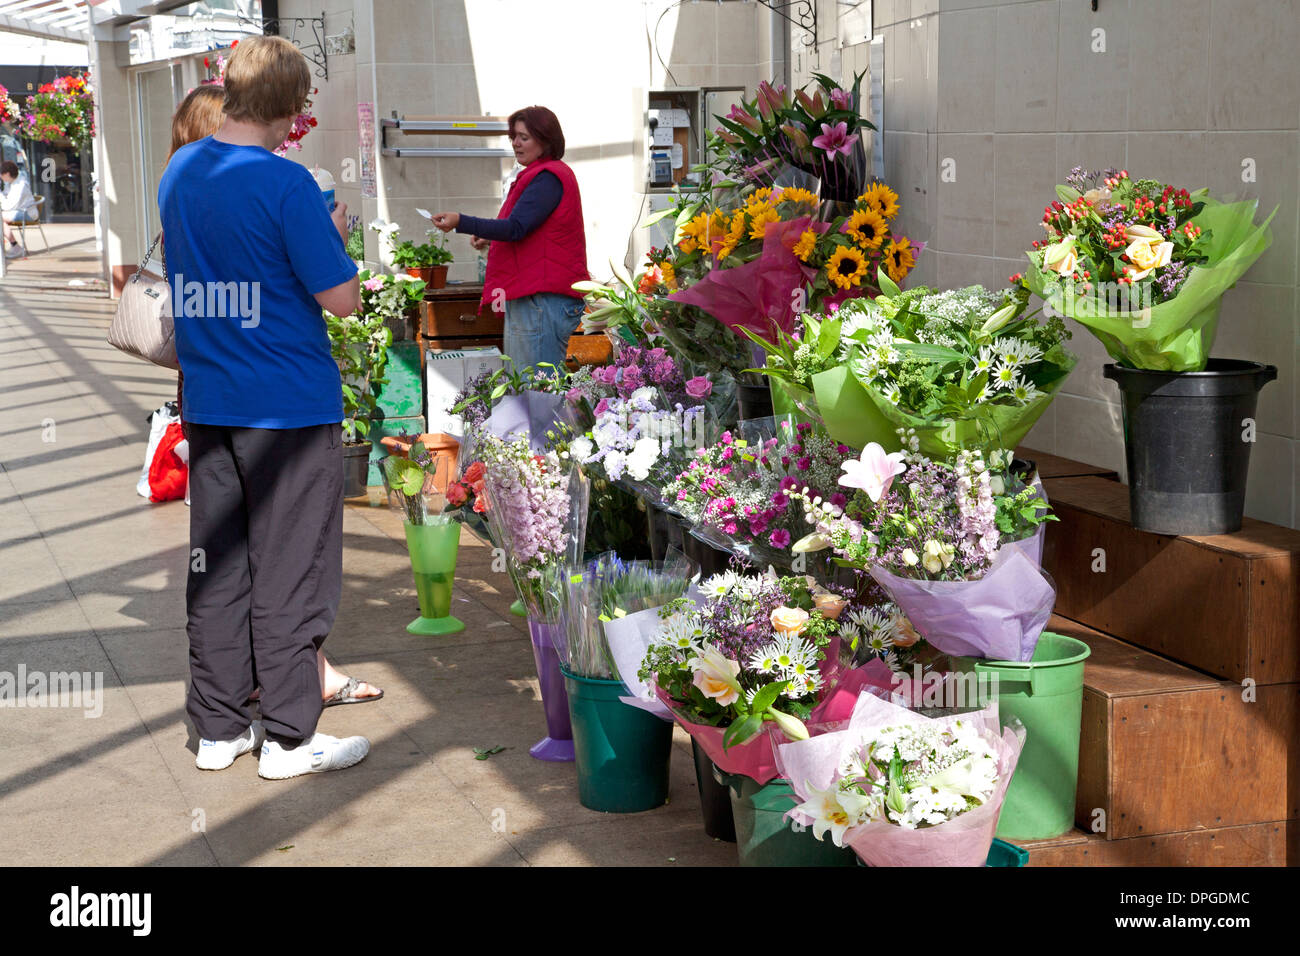 Flower stall in The Forge shopping centre, Stockton Heath, Cheshire - Stock Image